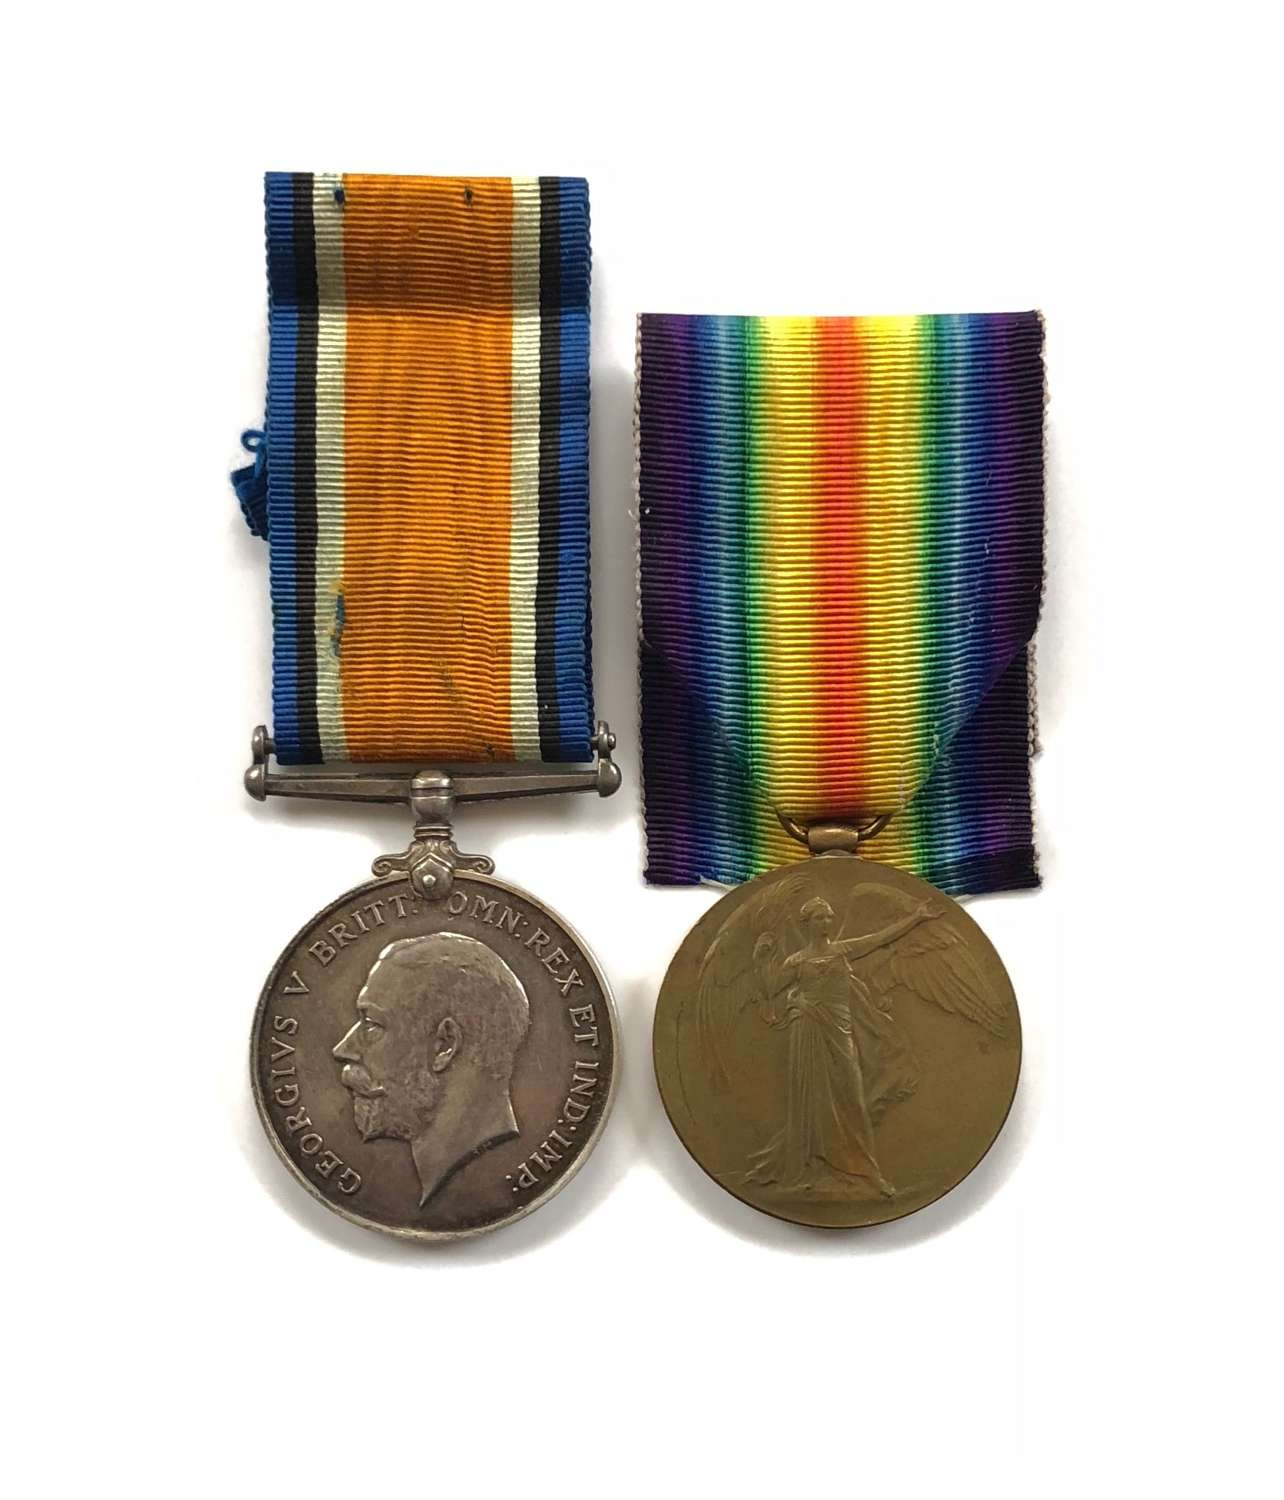 WW1 West Yorkshire Regiment Pair of Medals Missing in Action.